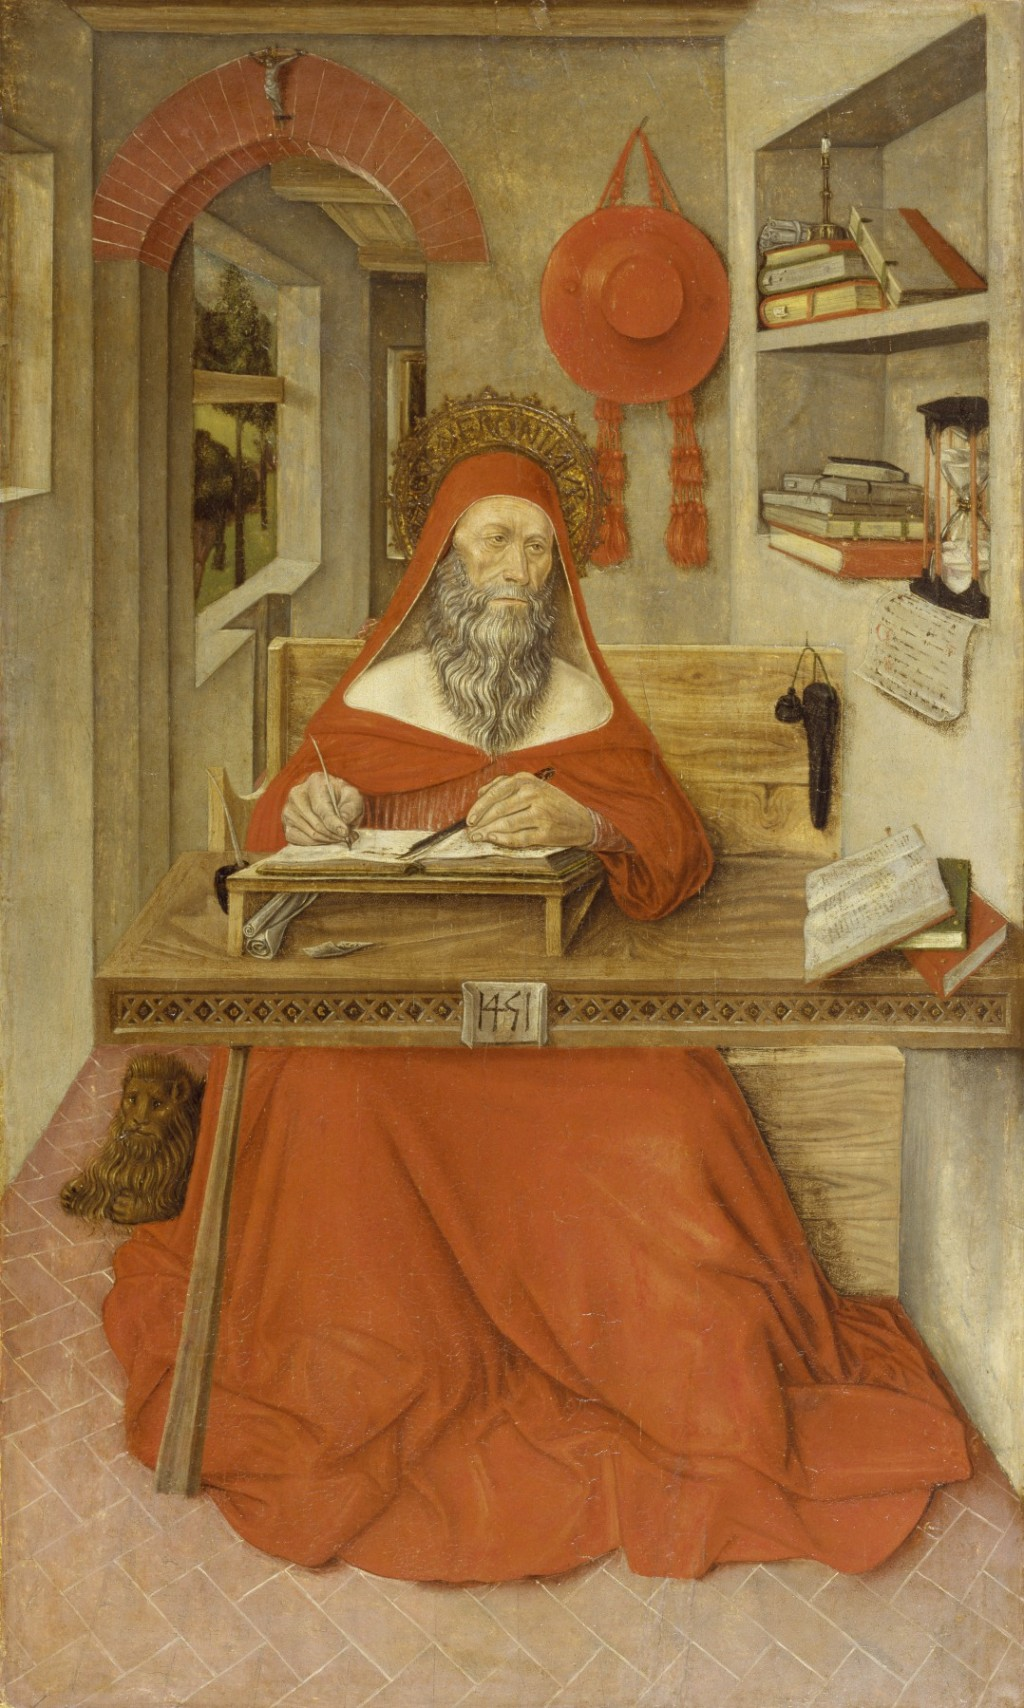 """Saint Jerome in His Study"" by Antonio de Fabriano  Image credit to the Walters Art Museum, under the CC0 license."